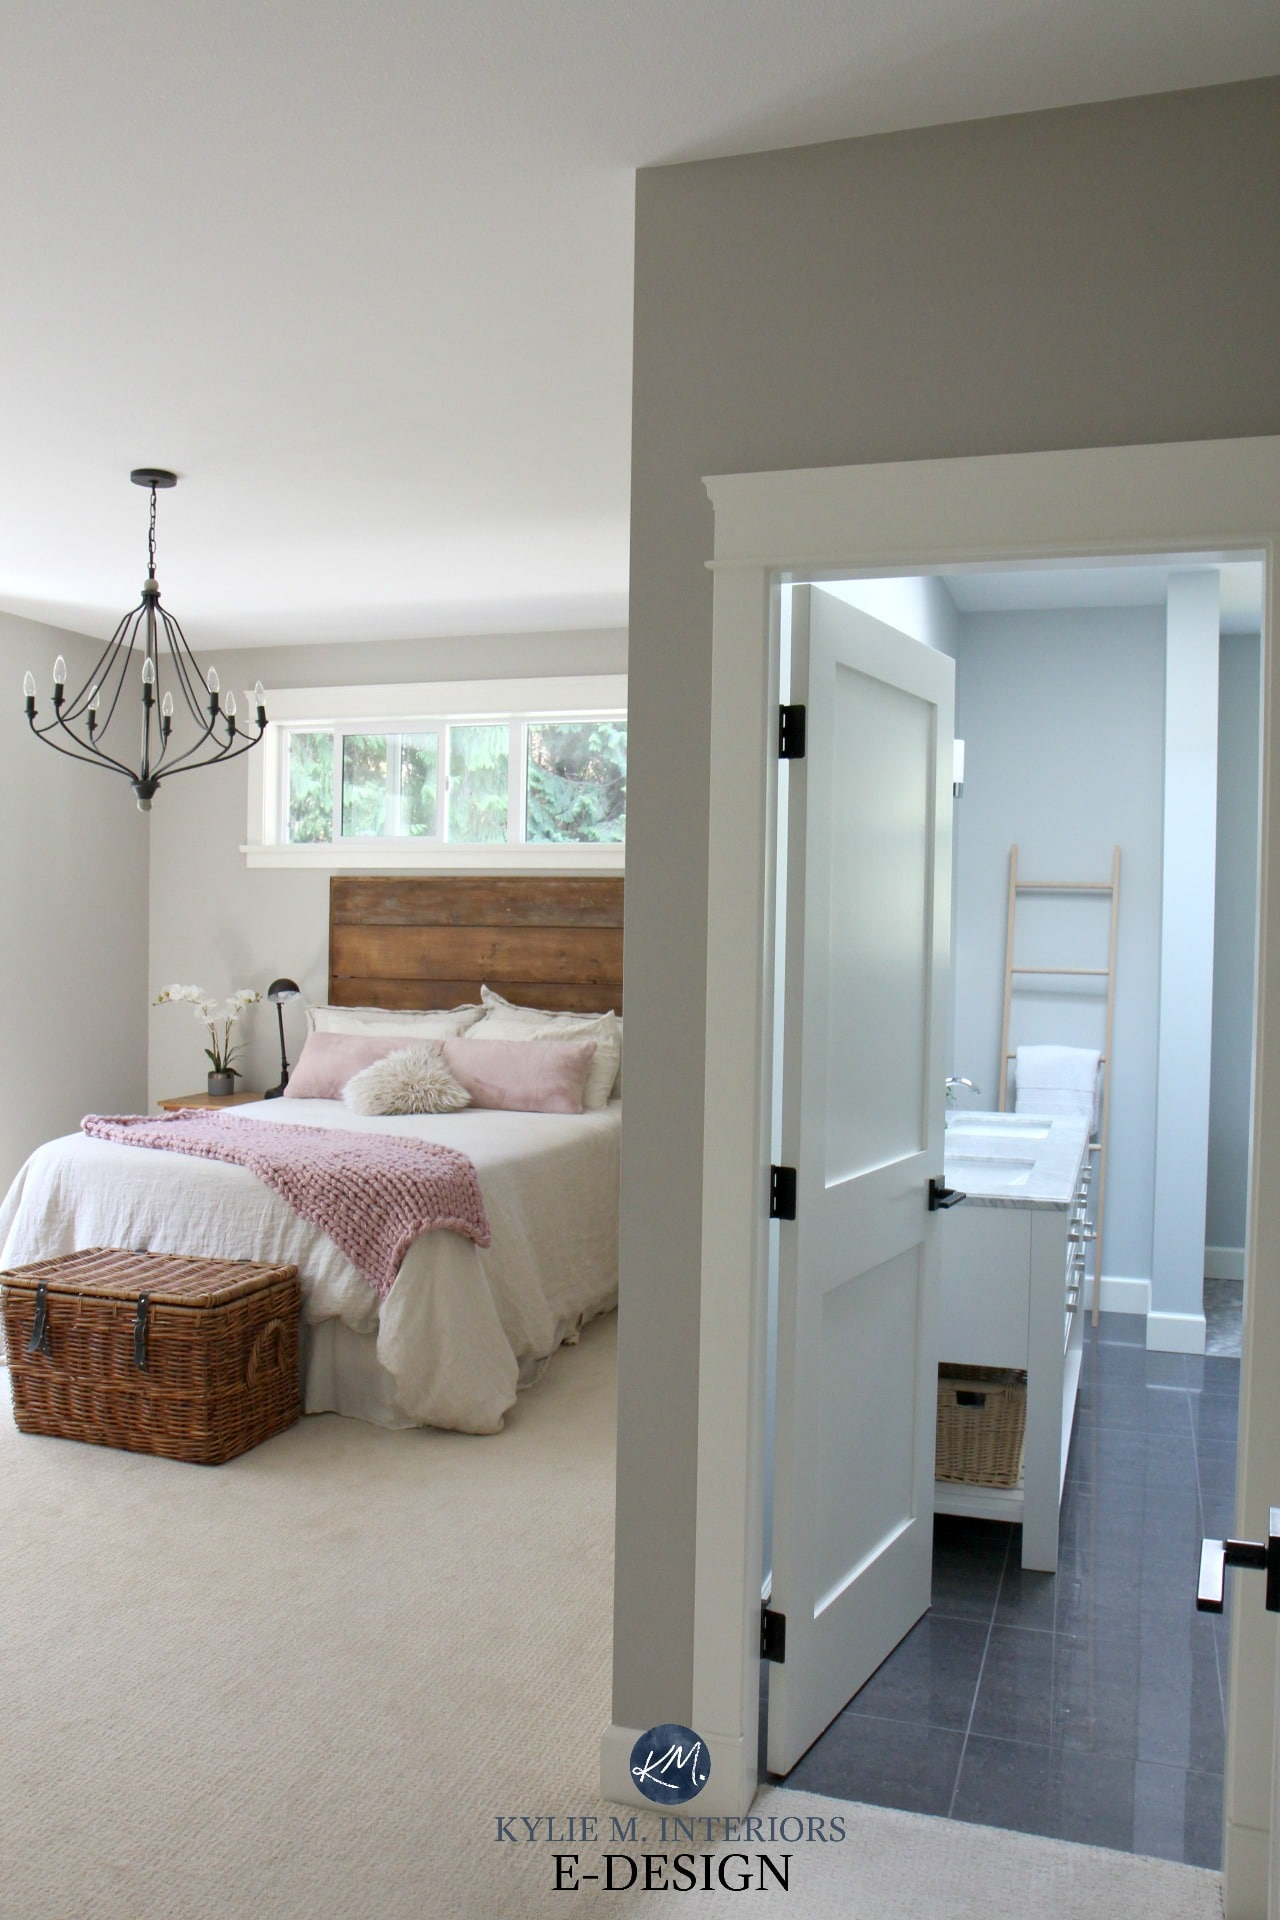 Romantic rustic master bedroom and ensuite bathroom benjamin moore revere pewter and wickham gray kylie m interiors edesign edecor and online paint